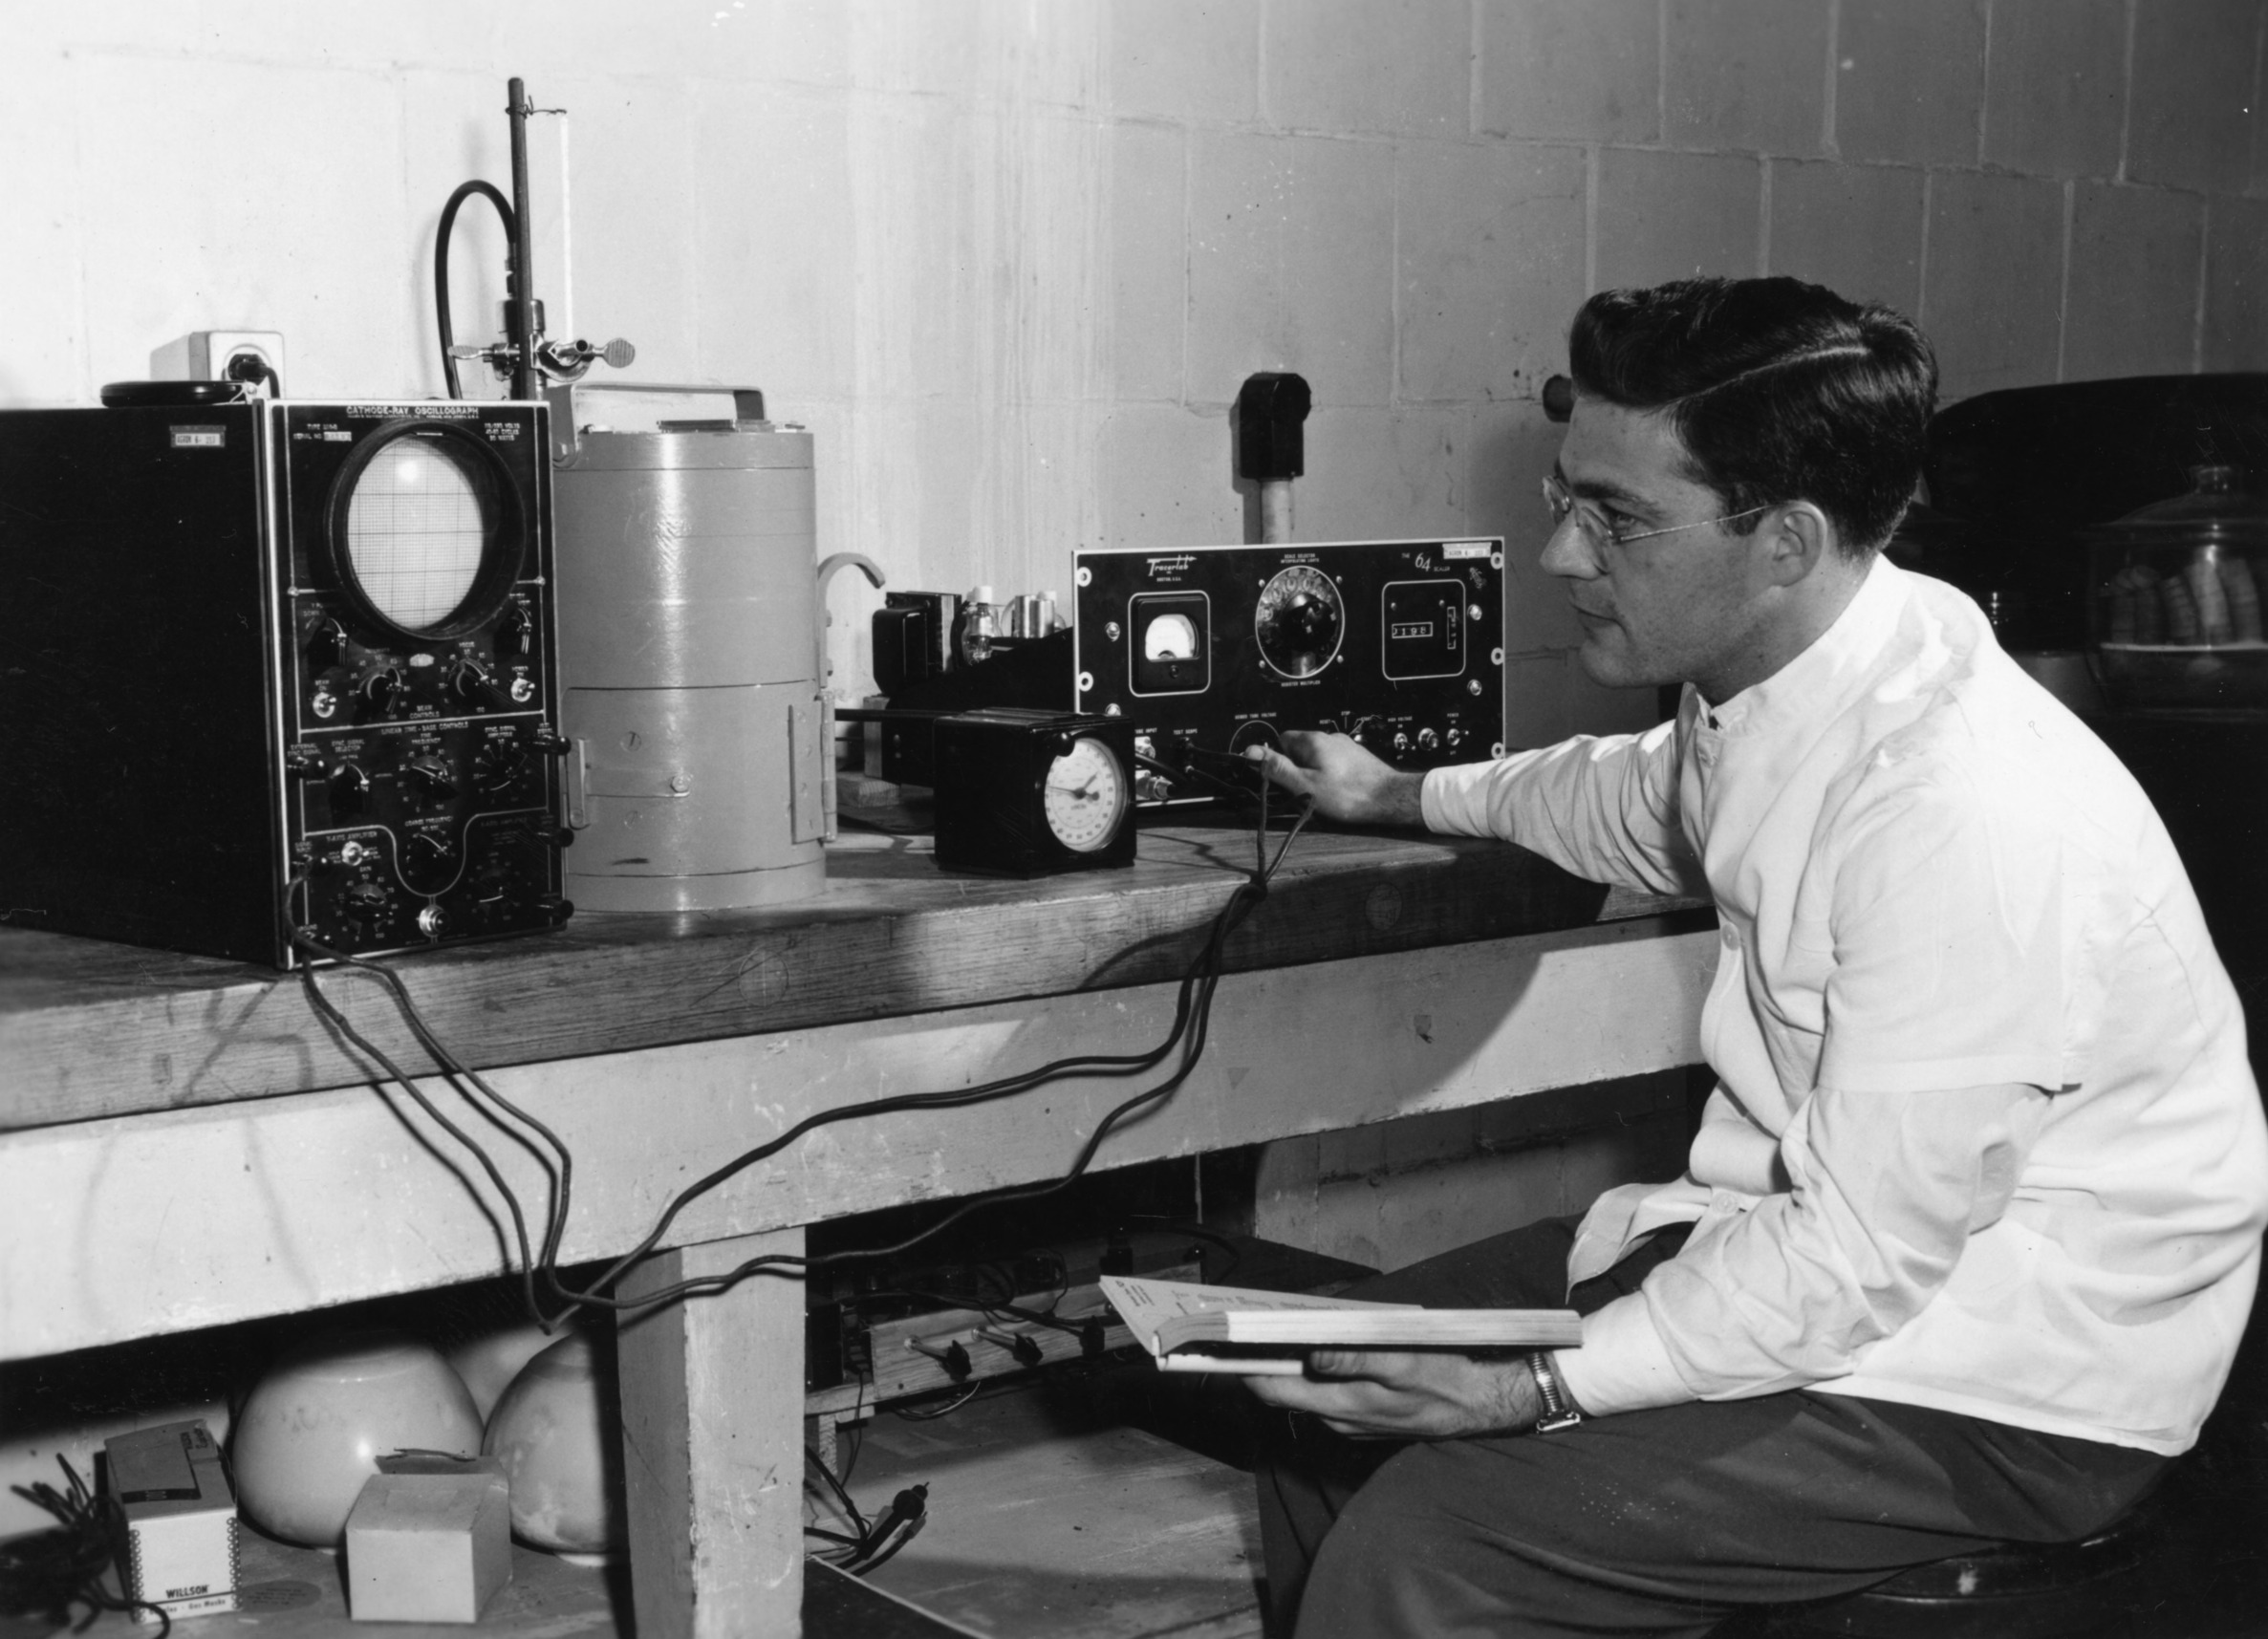 Unidentified man in a tobacco lab